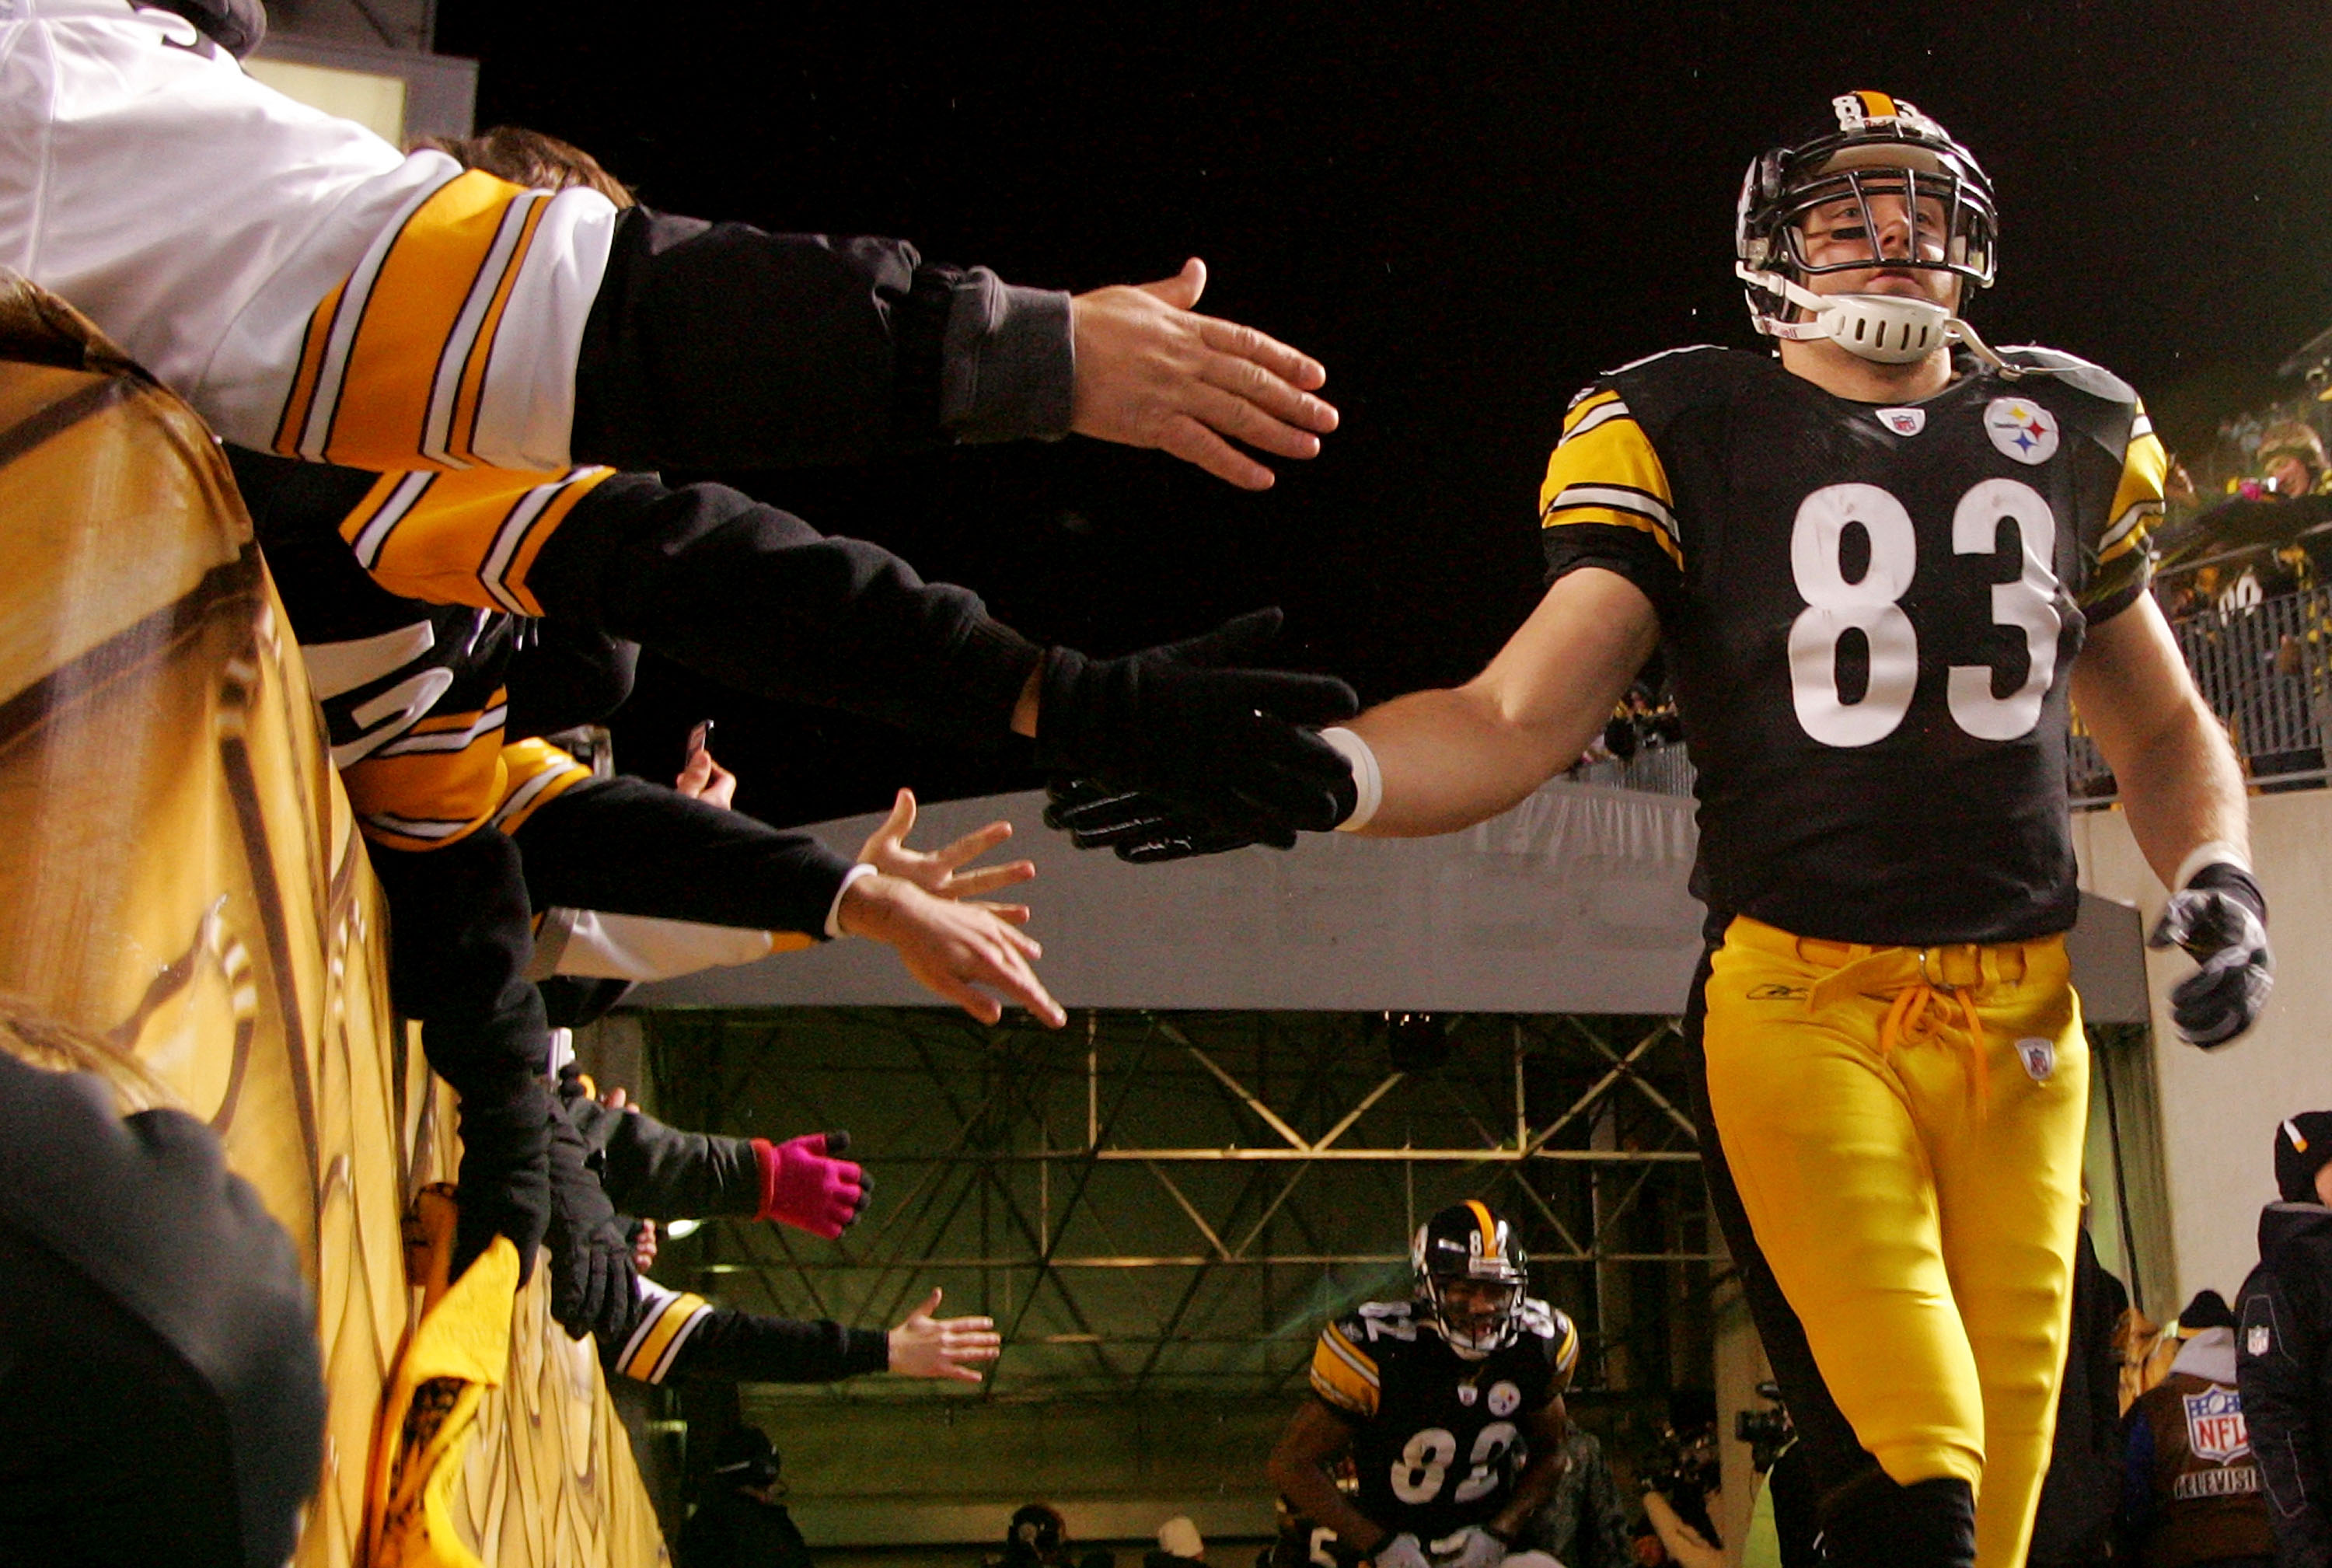 PITTSBURGH - DECEMBER 23:  Heath Miller #83 of the Pittsburgh Steelers greets fans during the start of the game  against the Carolina Panthers on December 23, 2010 at Heinz Field in Pittsburgh, Pennsylvania.  (Photo by Jared Wickerham/Getty Images)